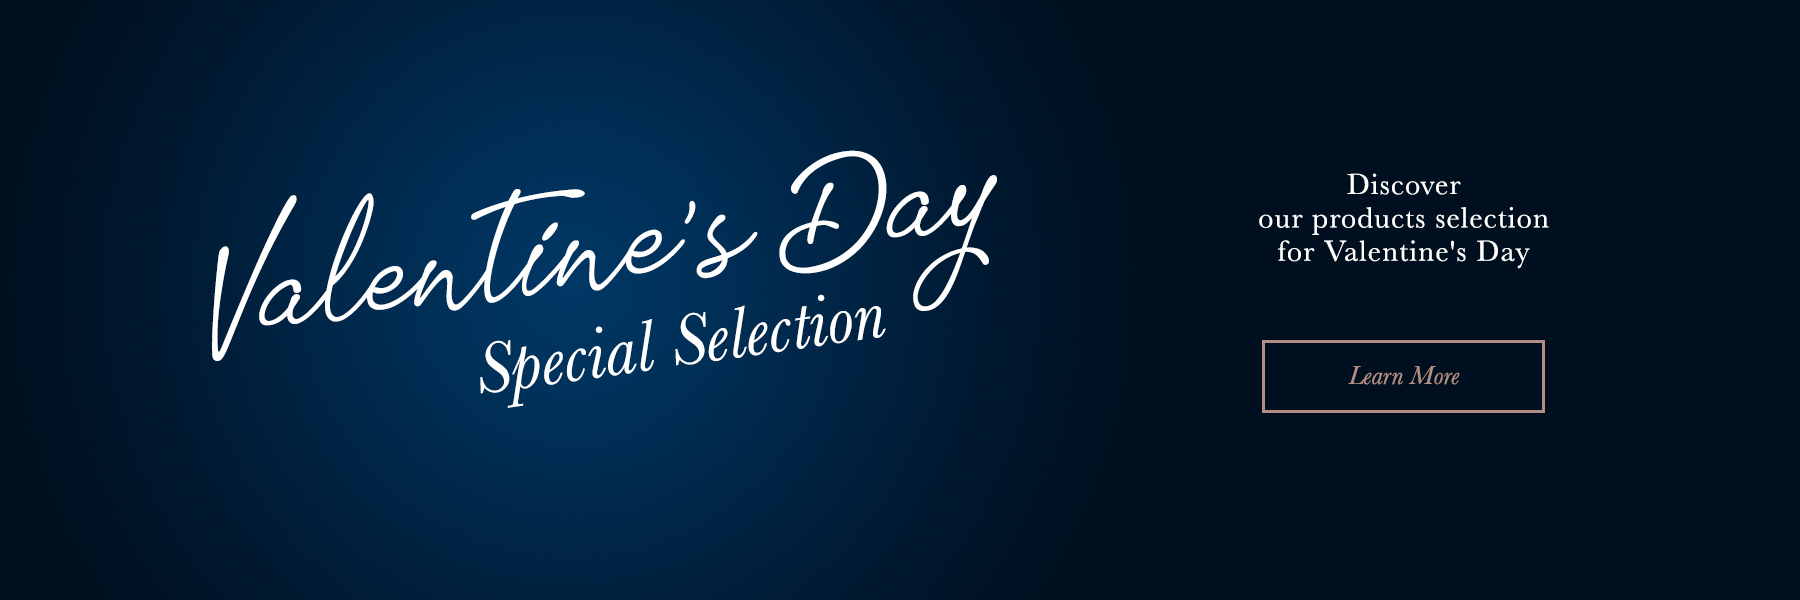 Valentine's Day Special Selection